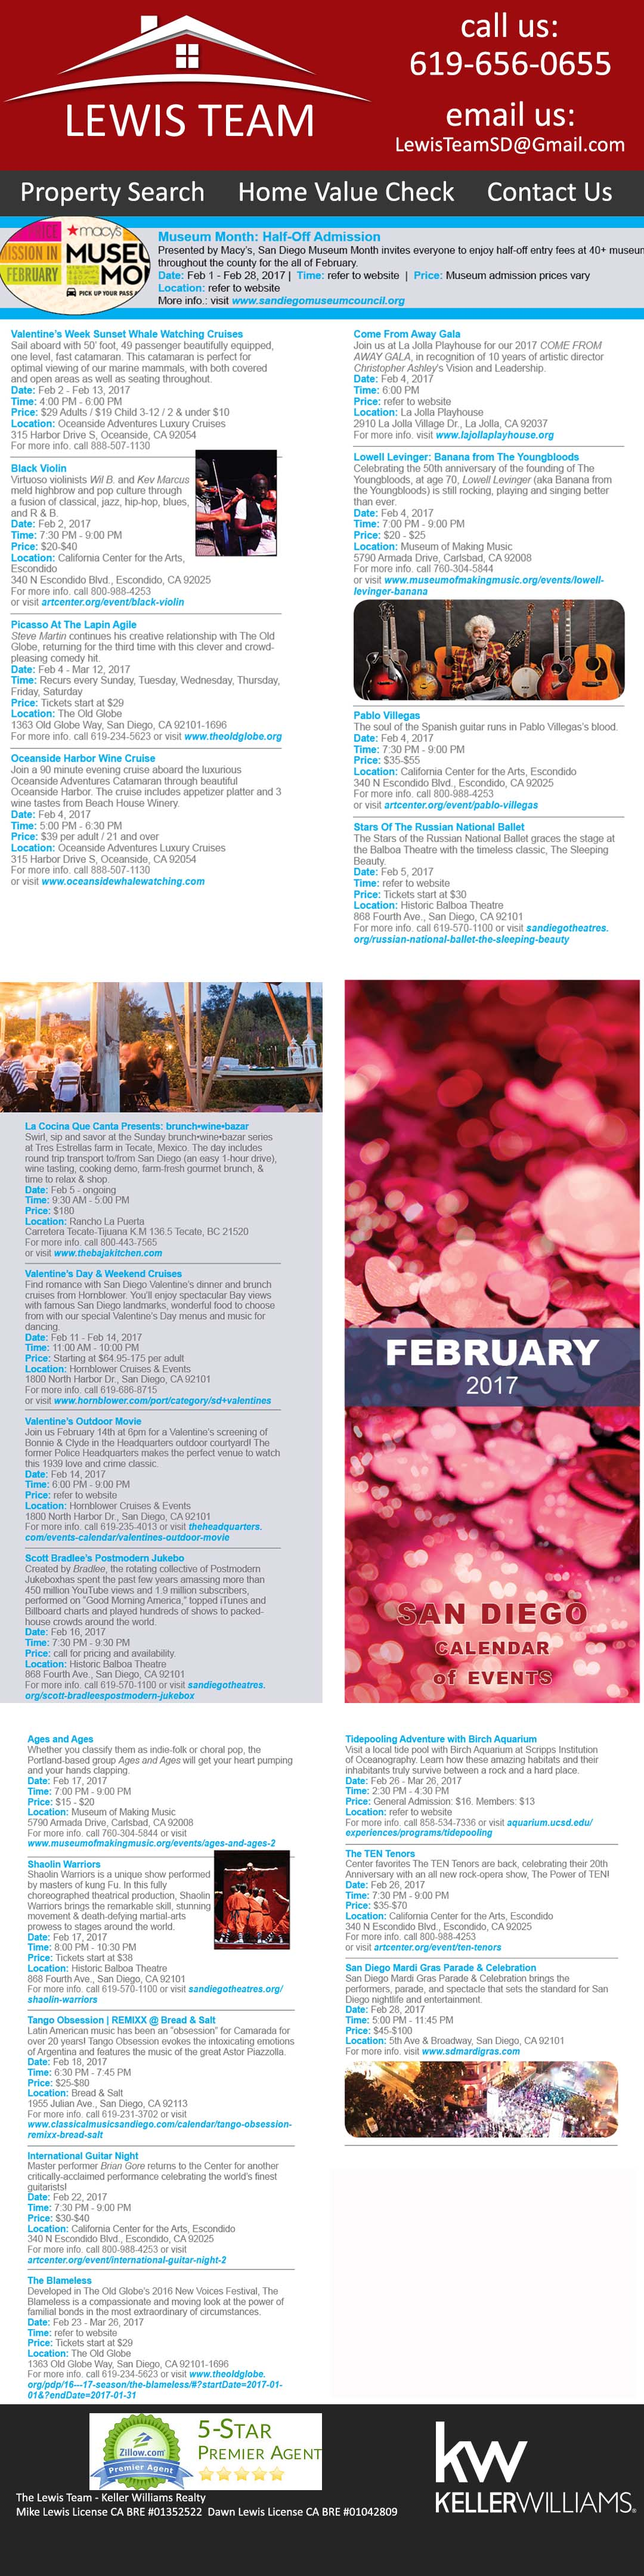 The-Lewis-Team-Calendar of Events in San Diego February 2017